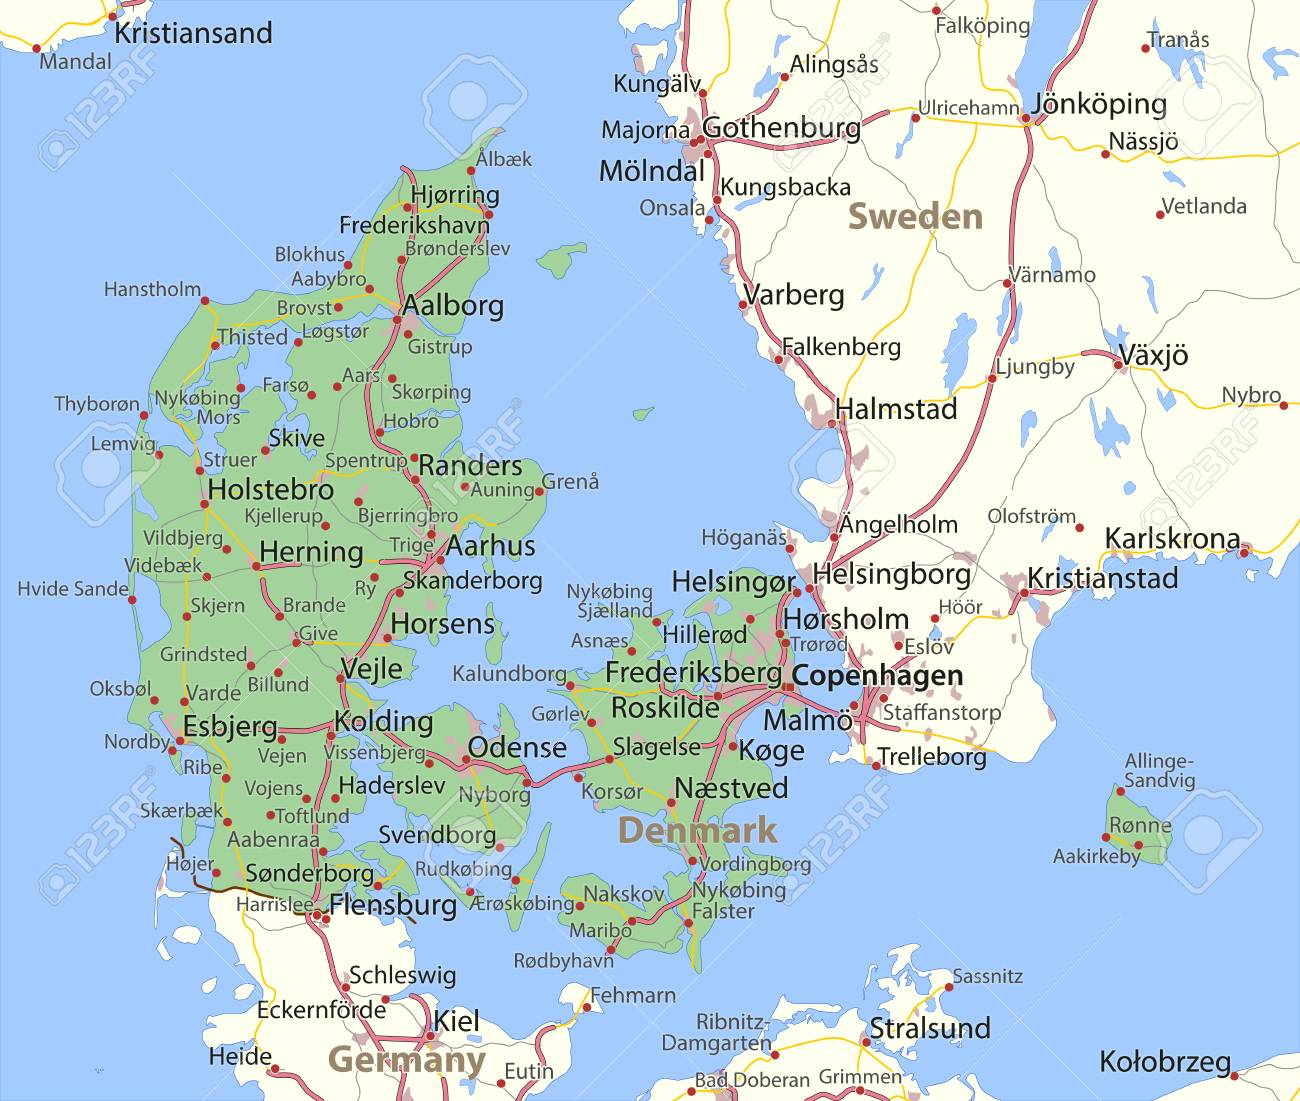 Map of Denmark. Shows country borders, urban areas, place names..